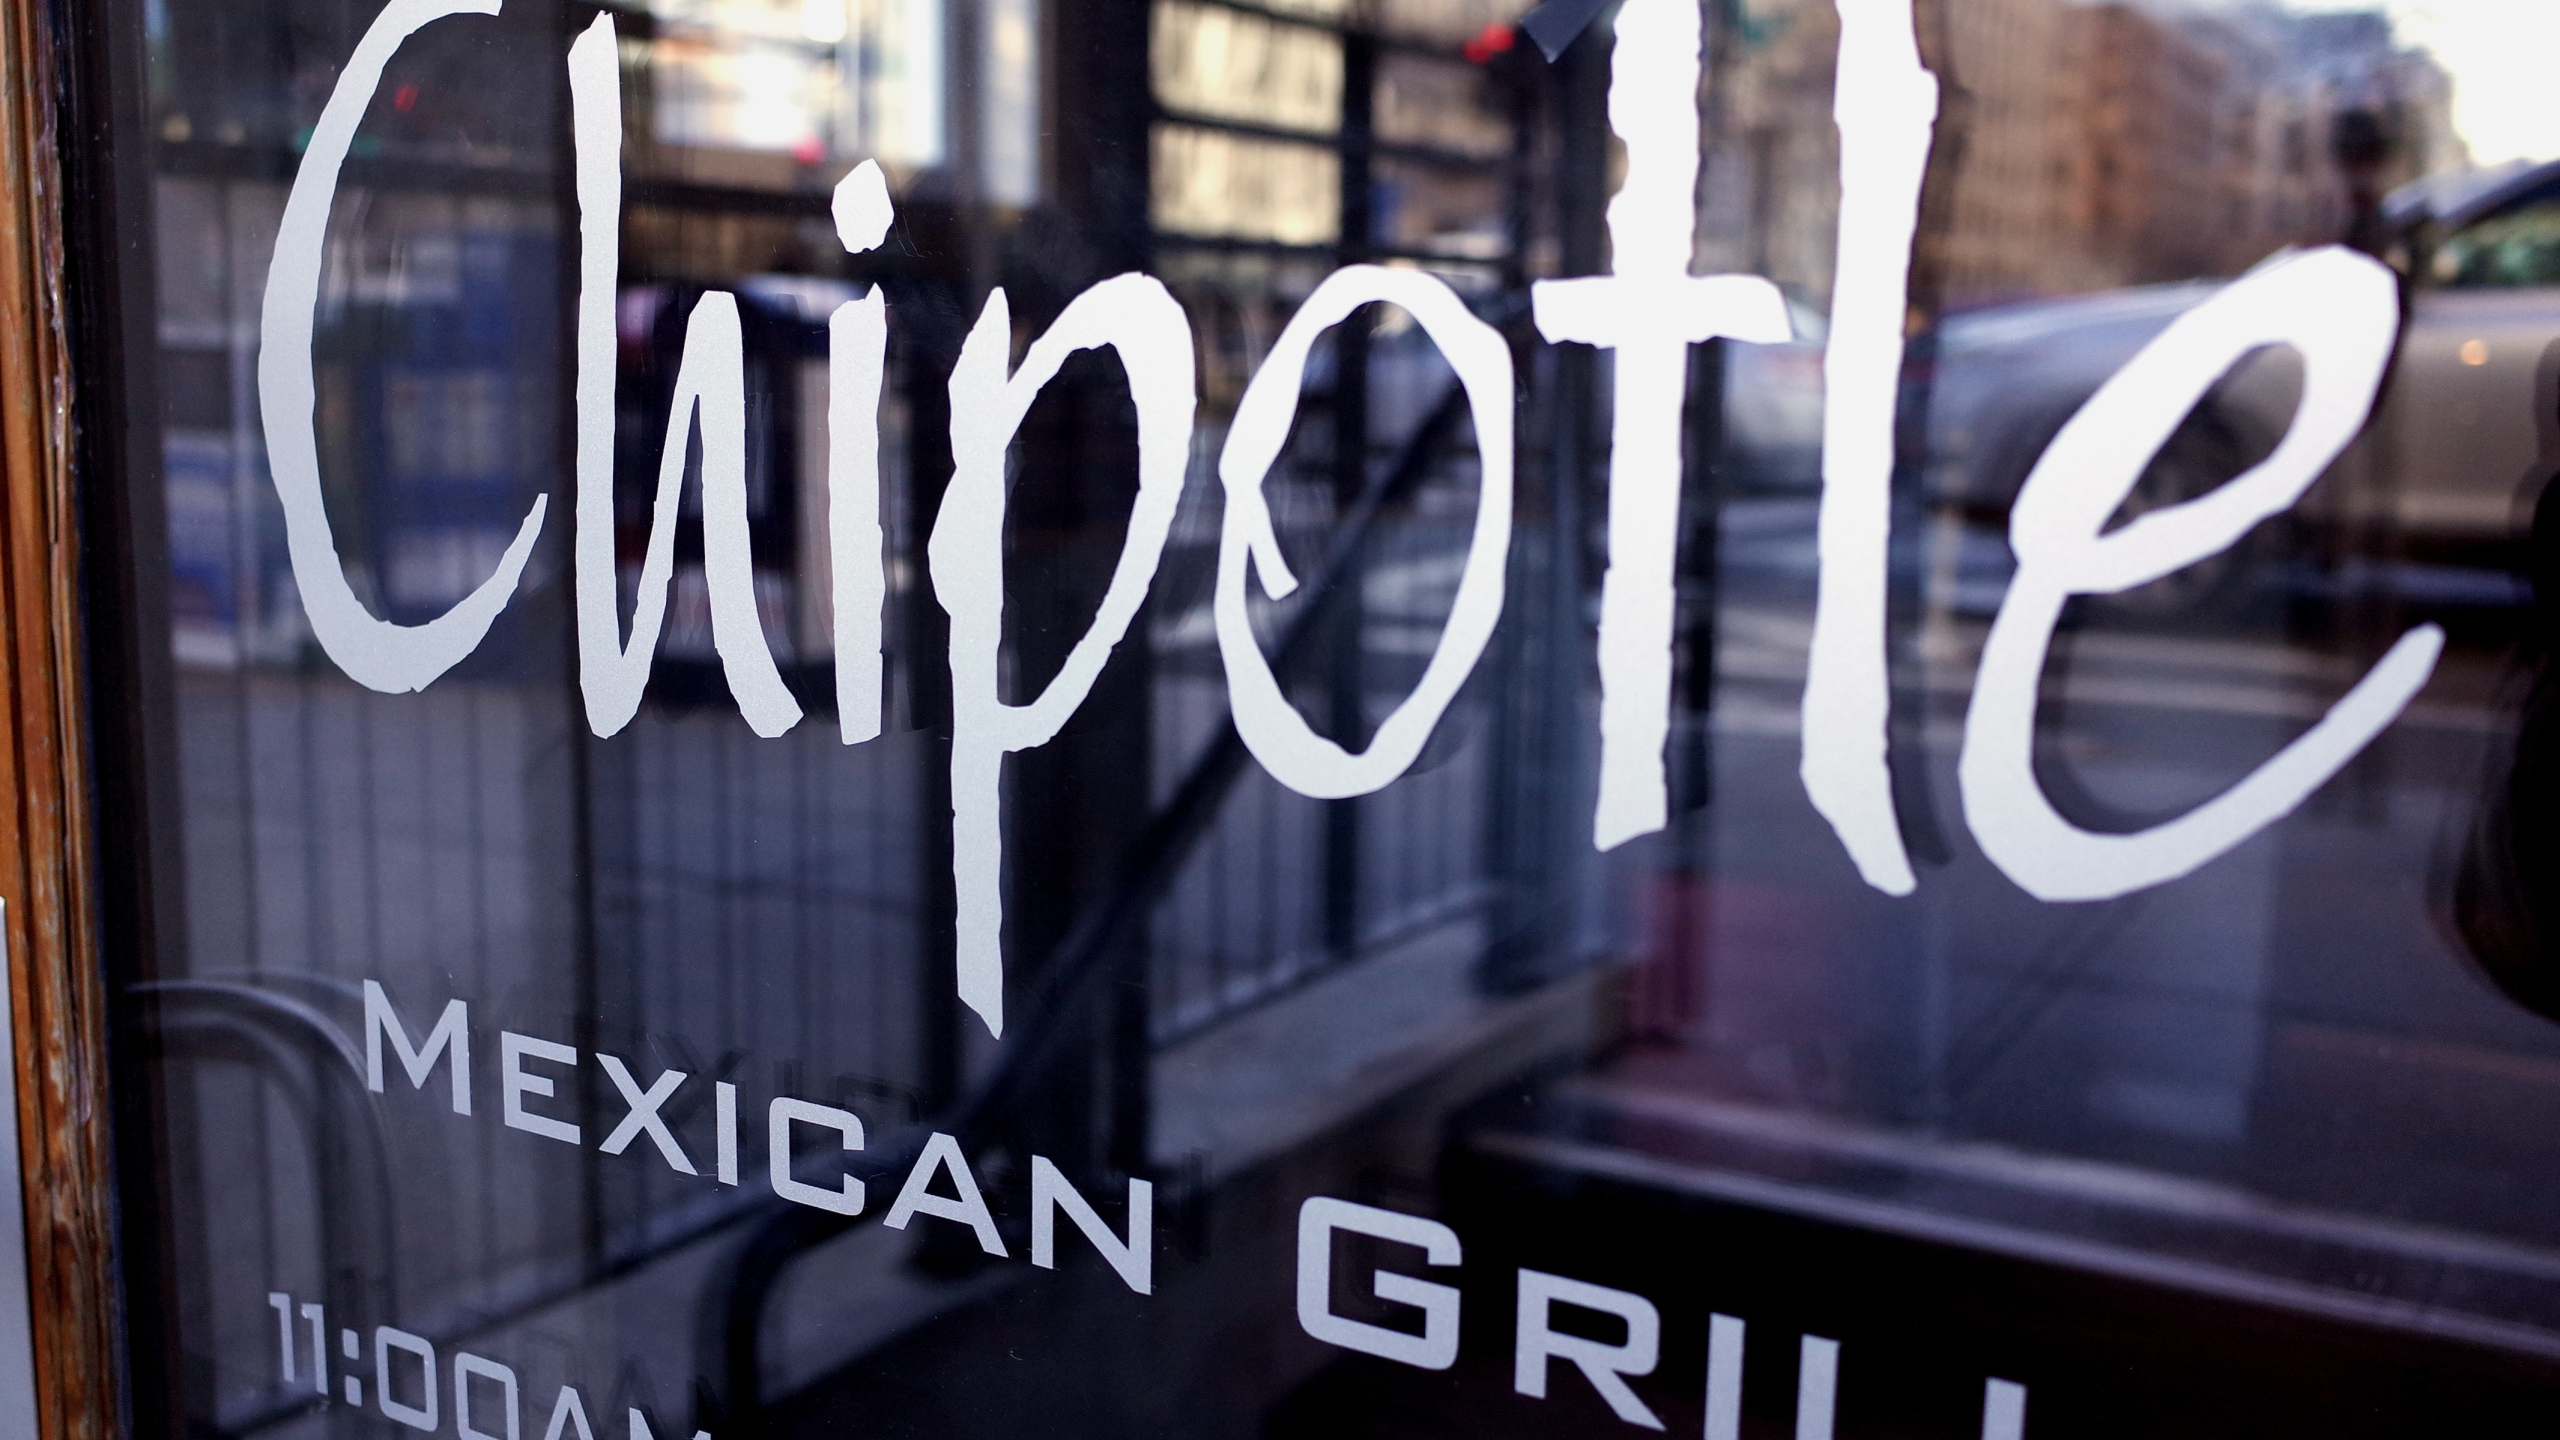 The Chipotle logo is seen on the door of one of its restaurants on Jan. 11, 2015, in Washington, D.C. (Credit: MANDEL NGAN/AFP/Getty Images)